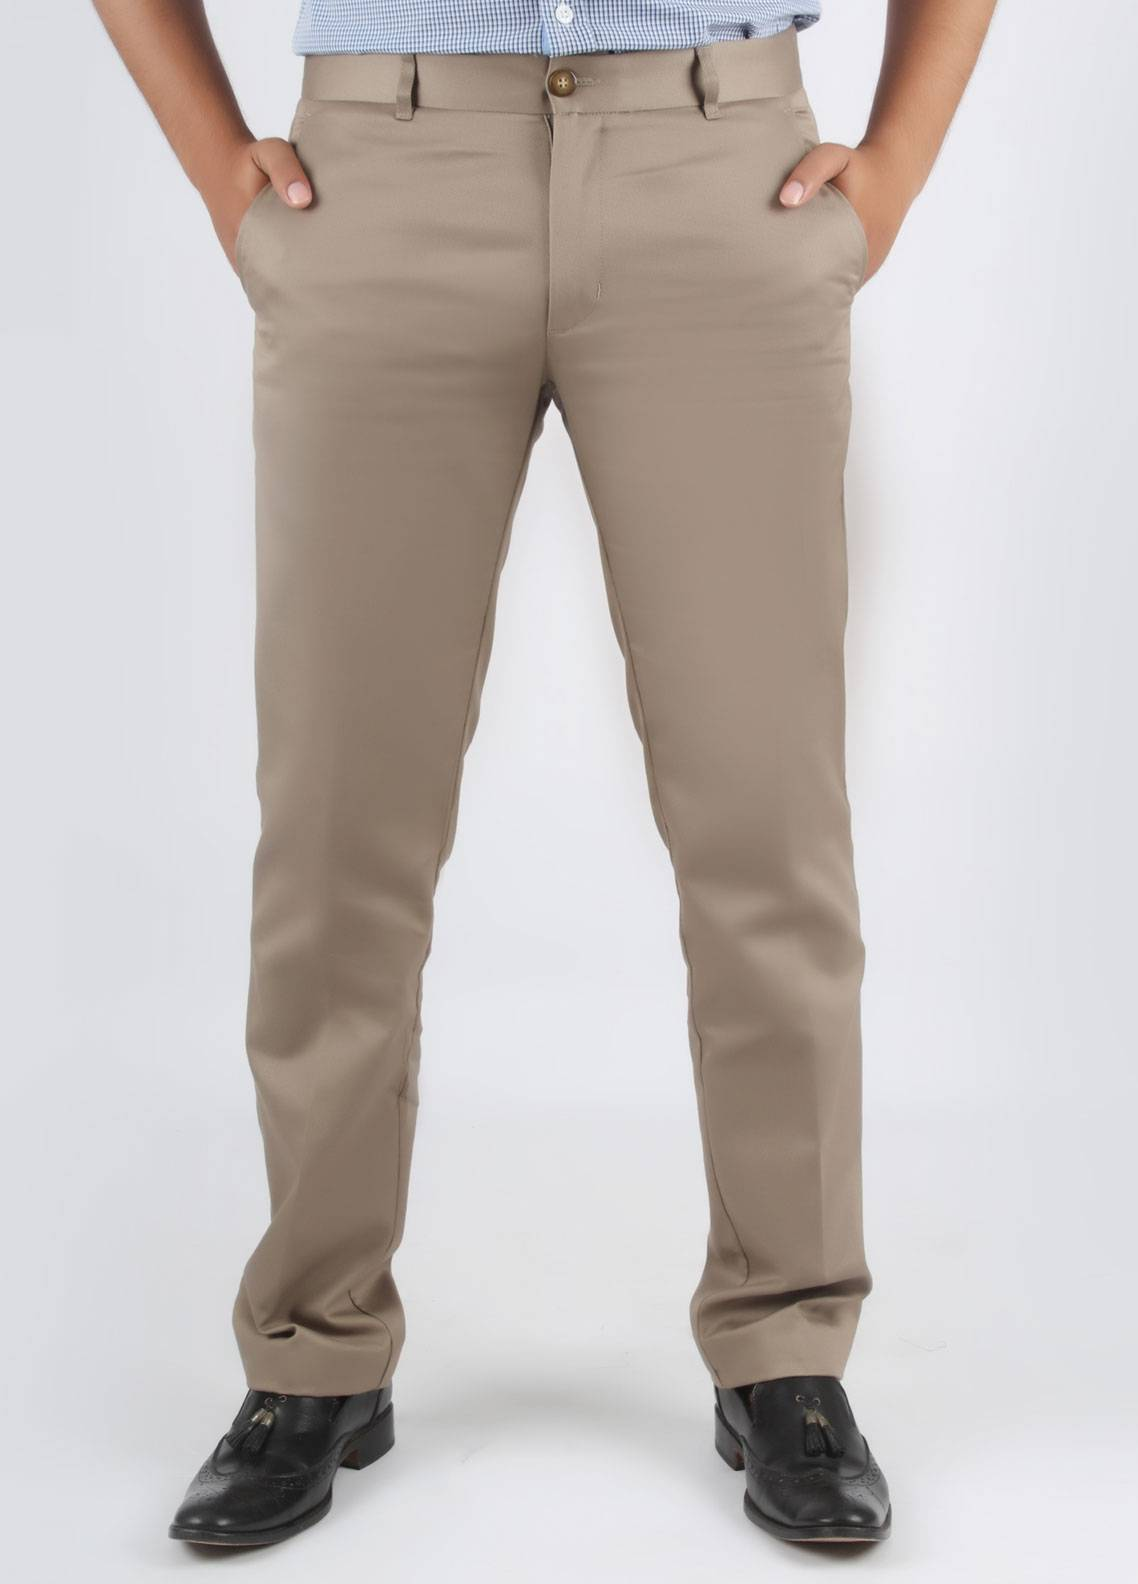 Bien Habille Cotton No-Iron Trouser for Men -  Smart Fit Plaza Taupe Grey